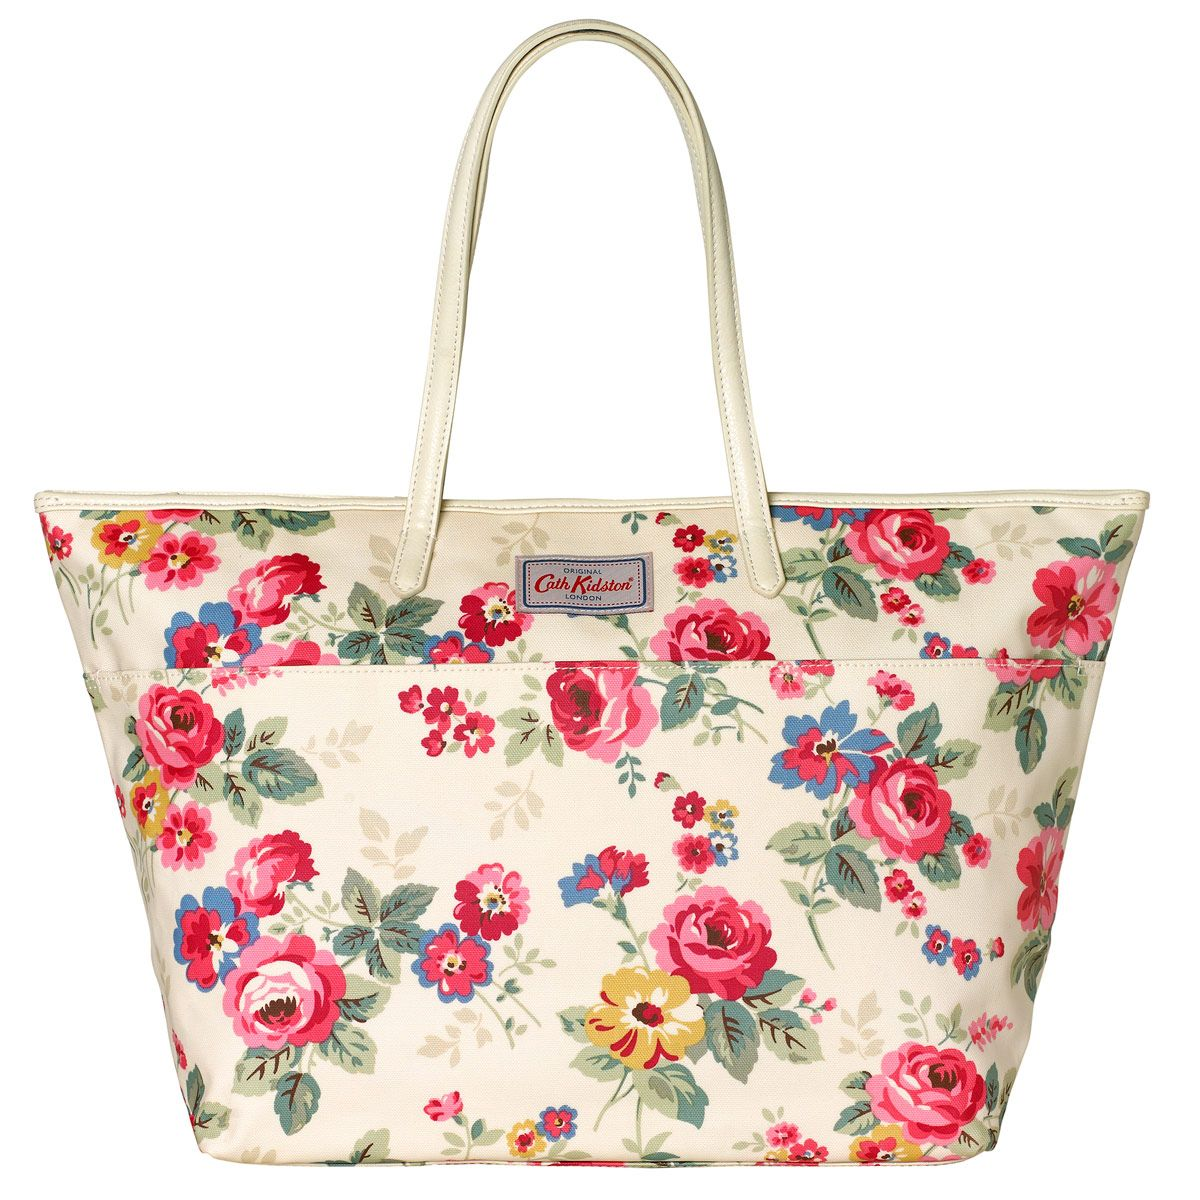 Clarendon rose large trimmed tote cath kidston my dream clarendon rose large trimmed tote cath kidston doublecrazyfo Images